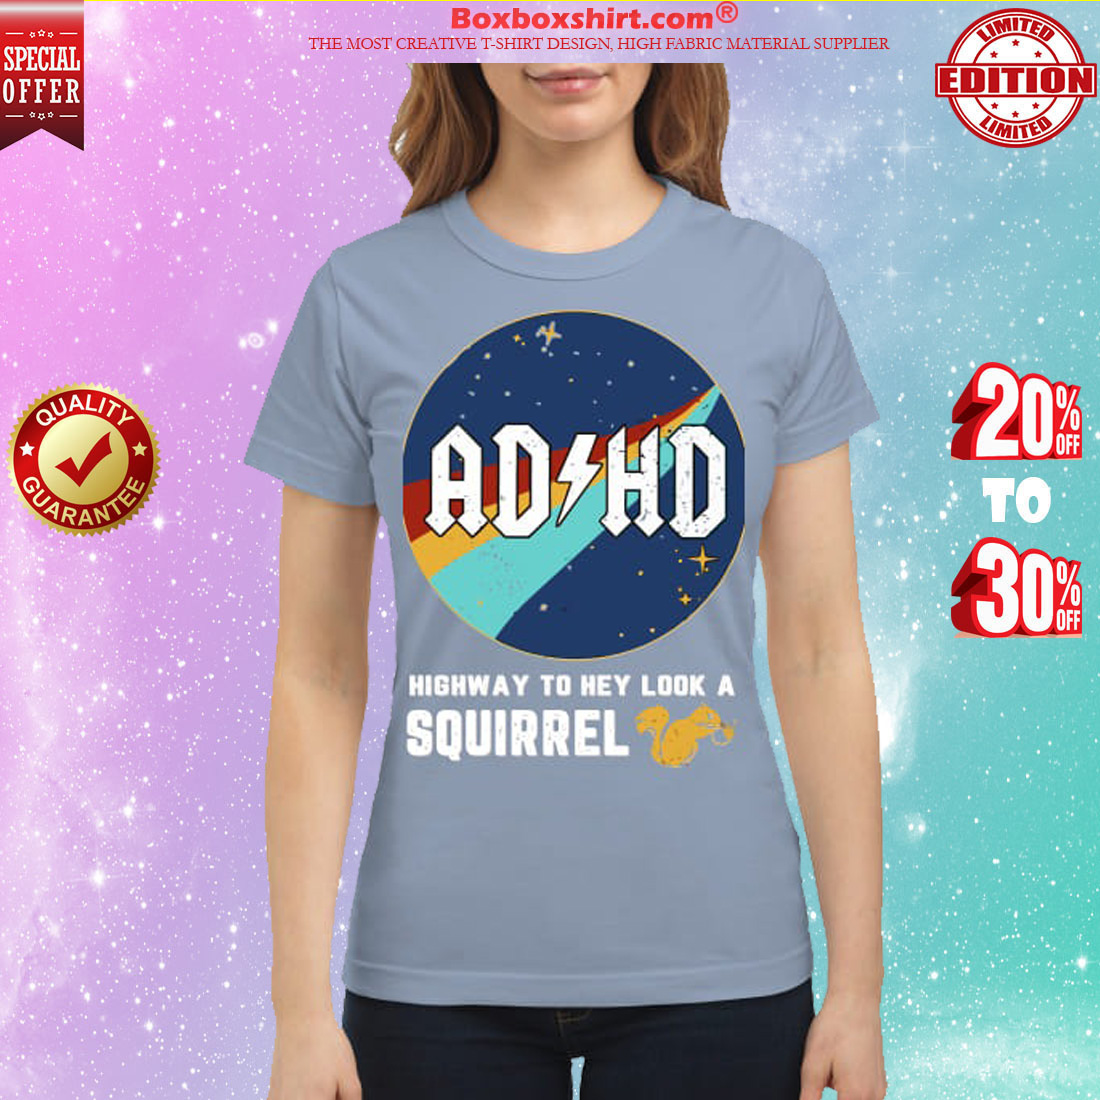 ADHD highway to hey look a squirrel classic shirt